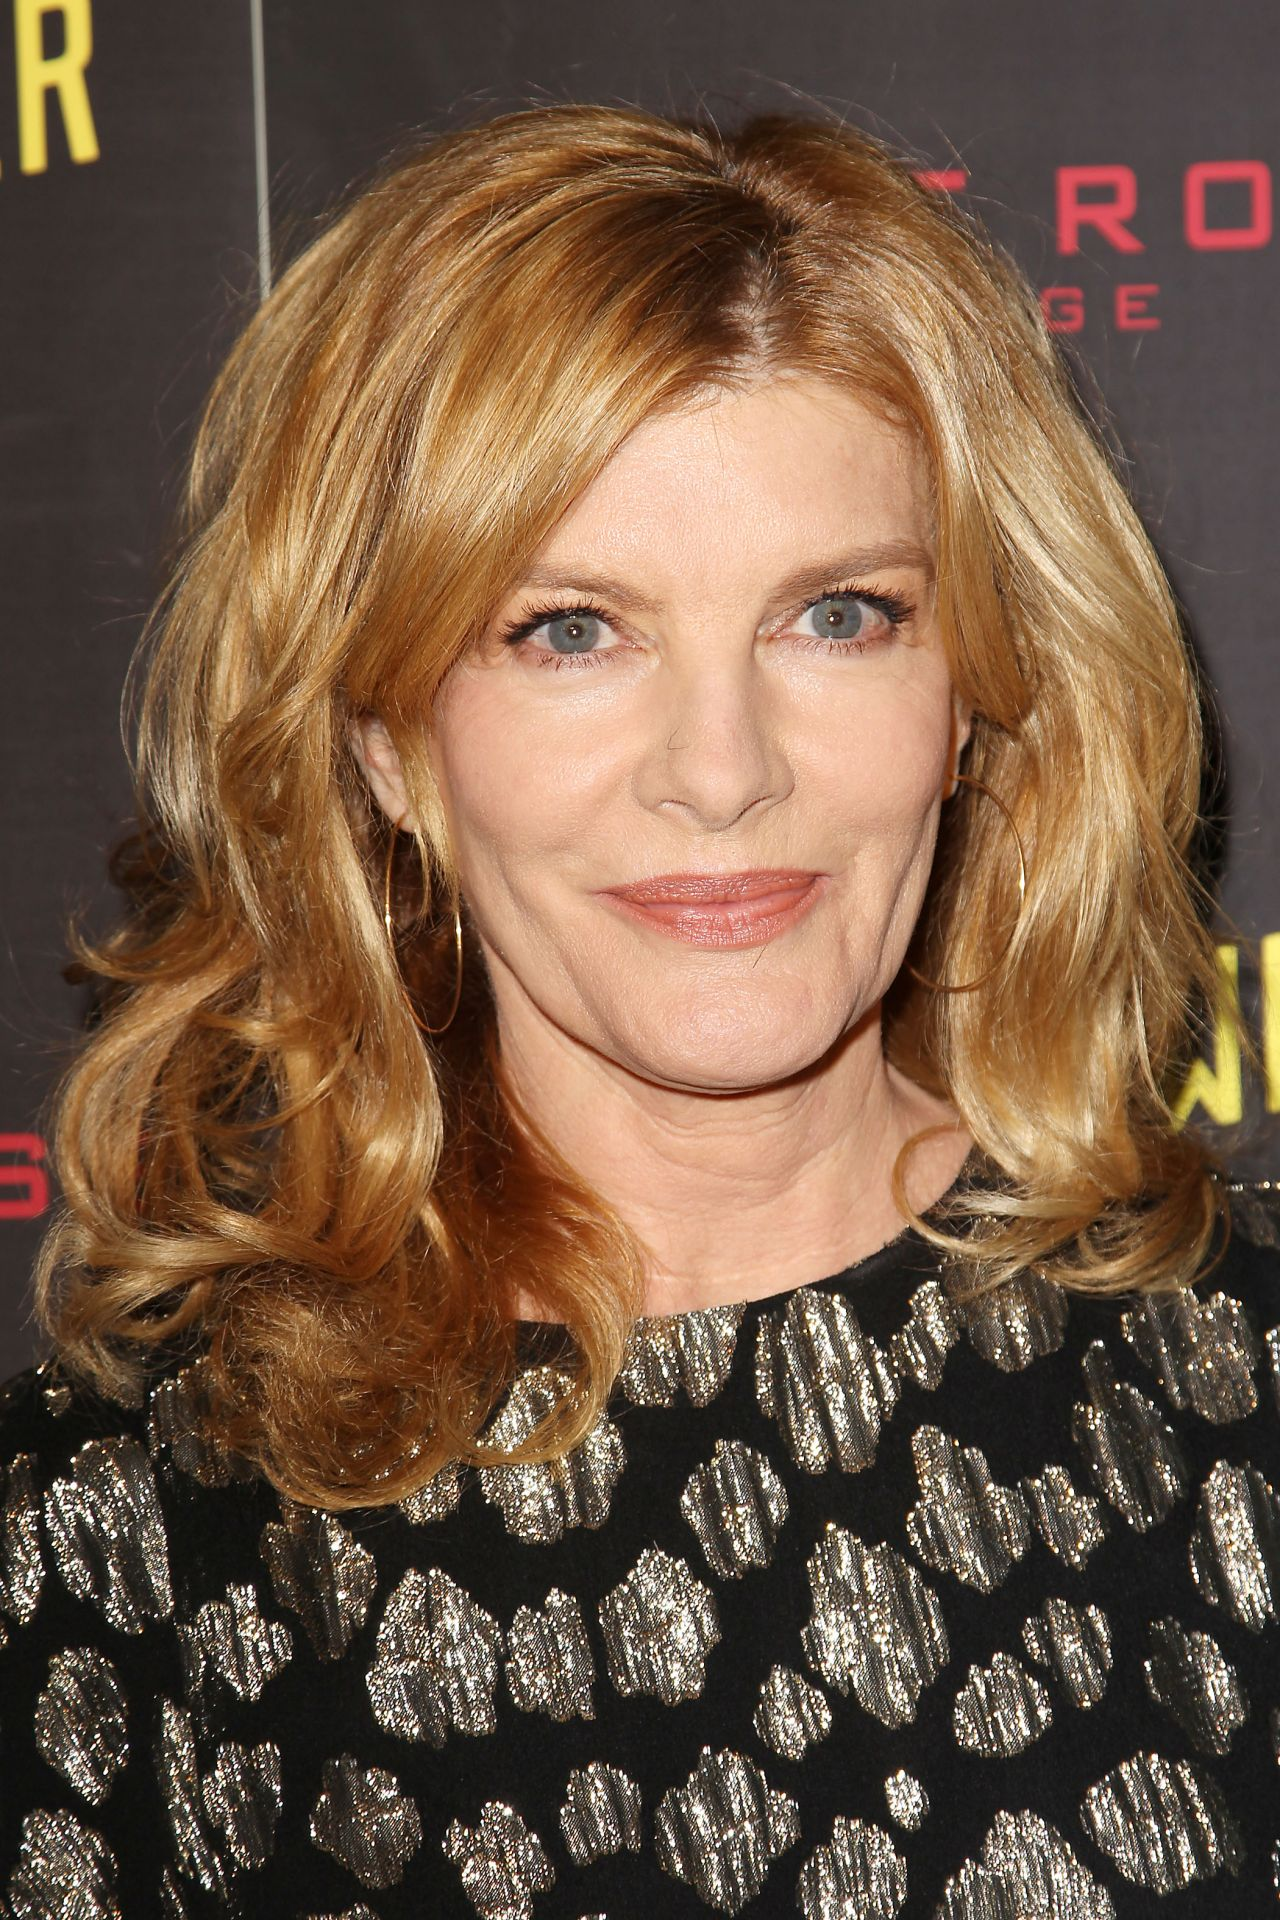 Rene Russo Nightcrawler Premiere In New York City